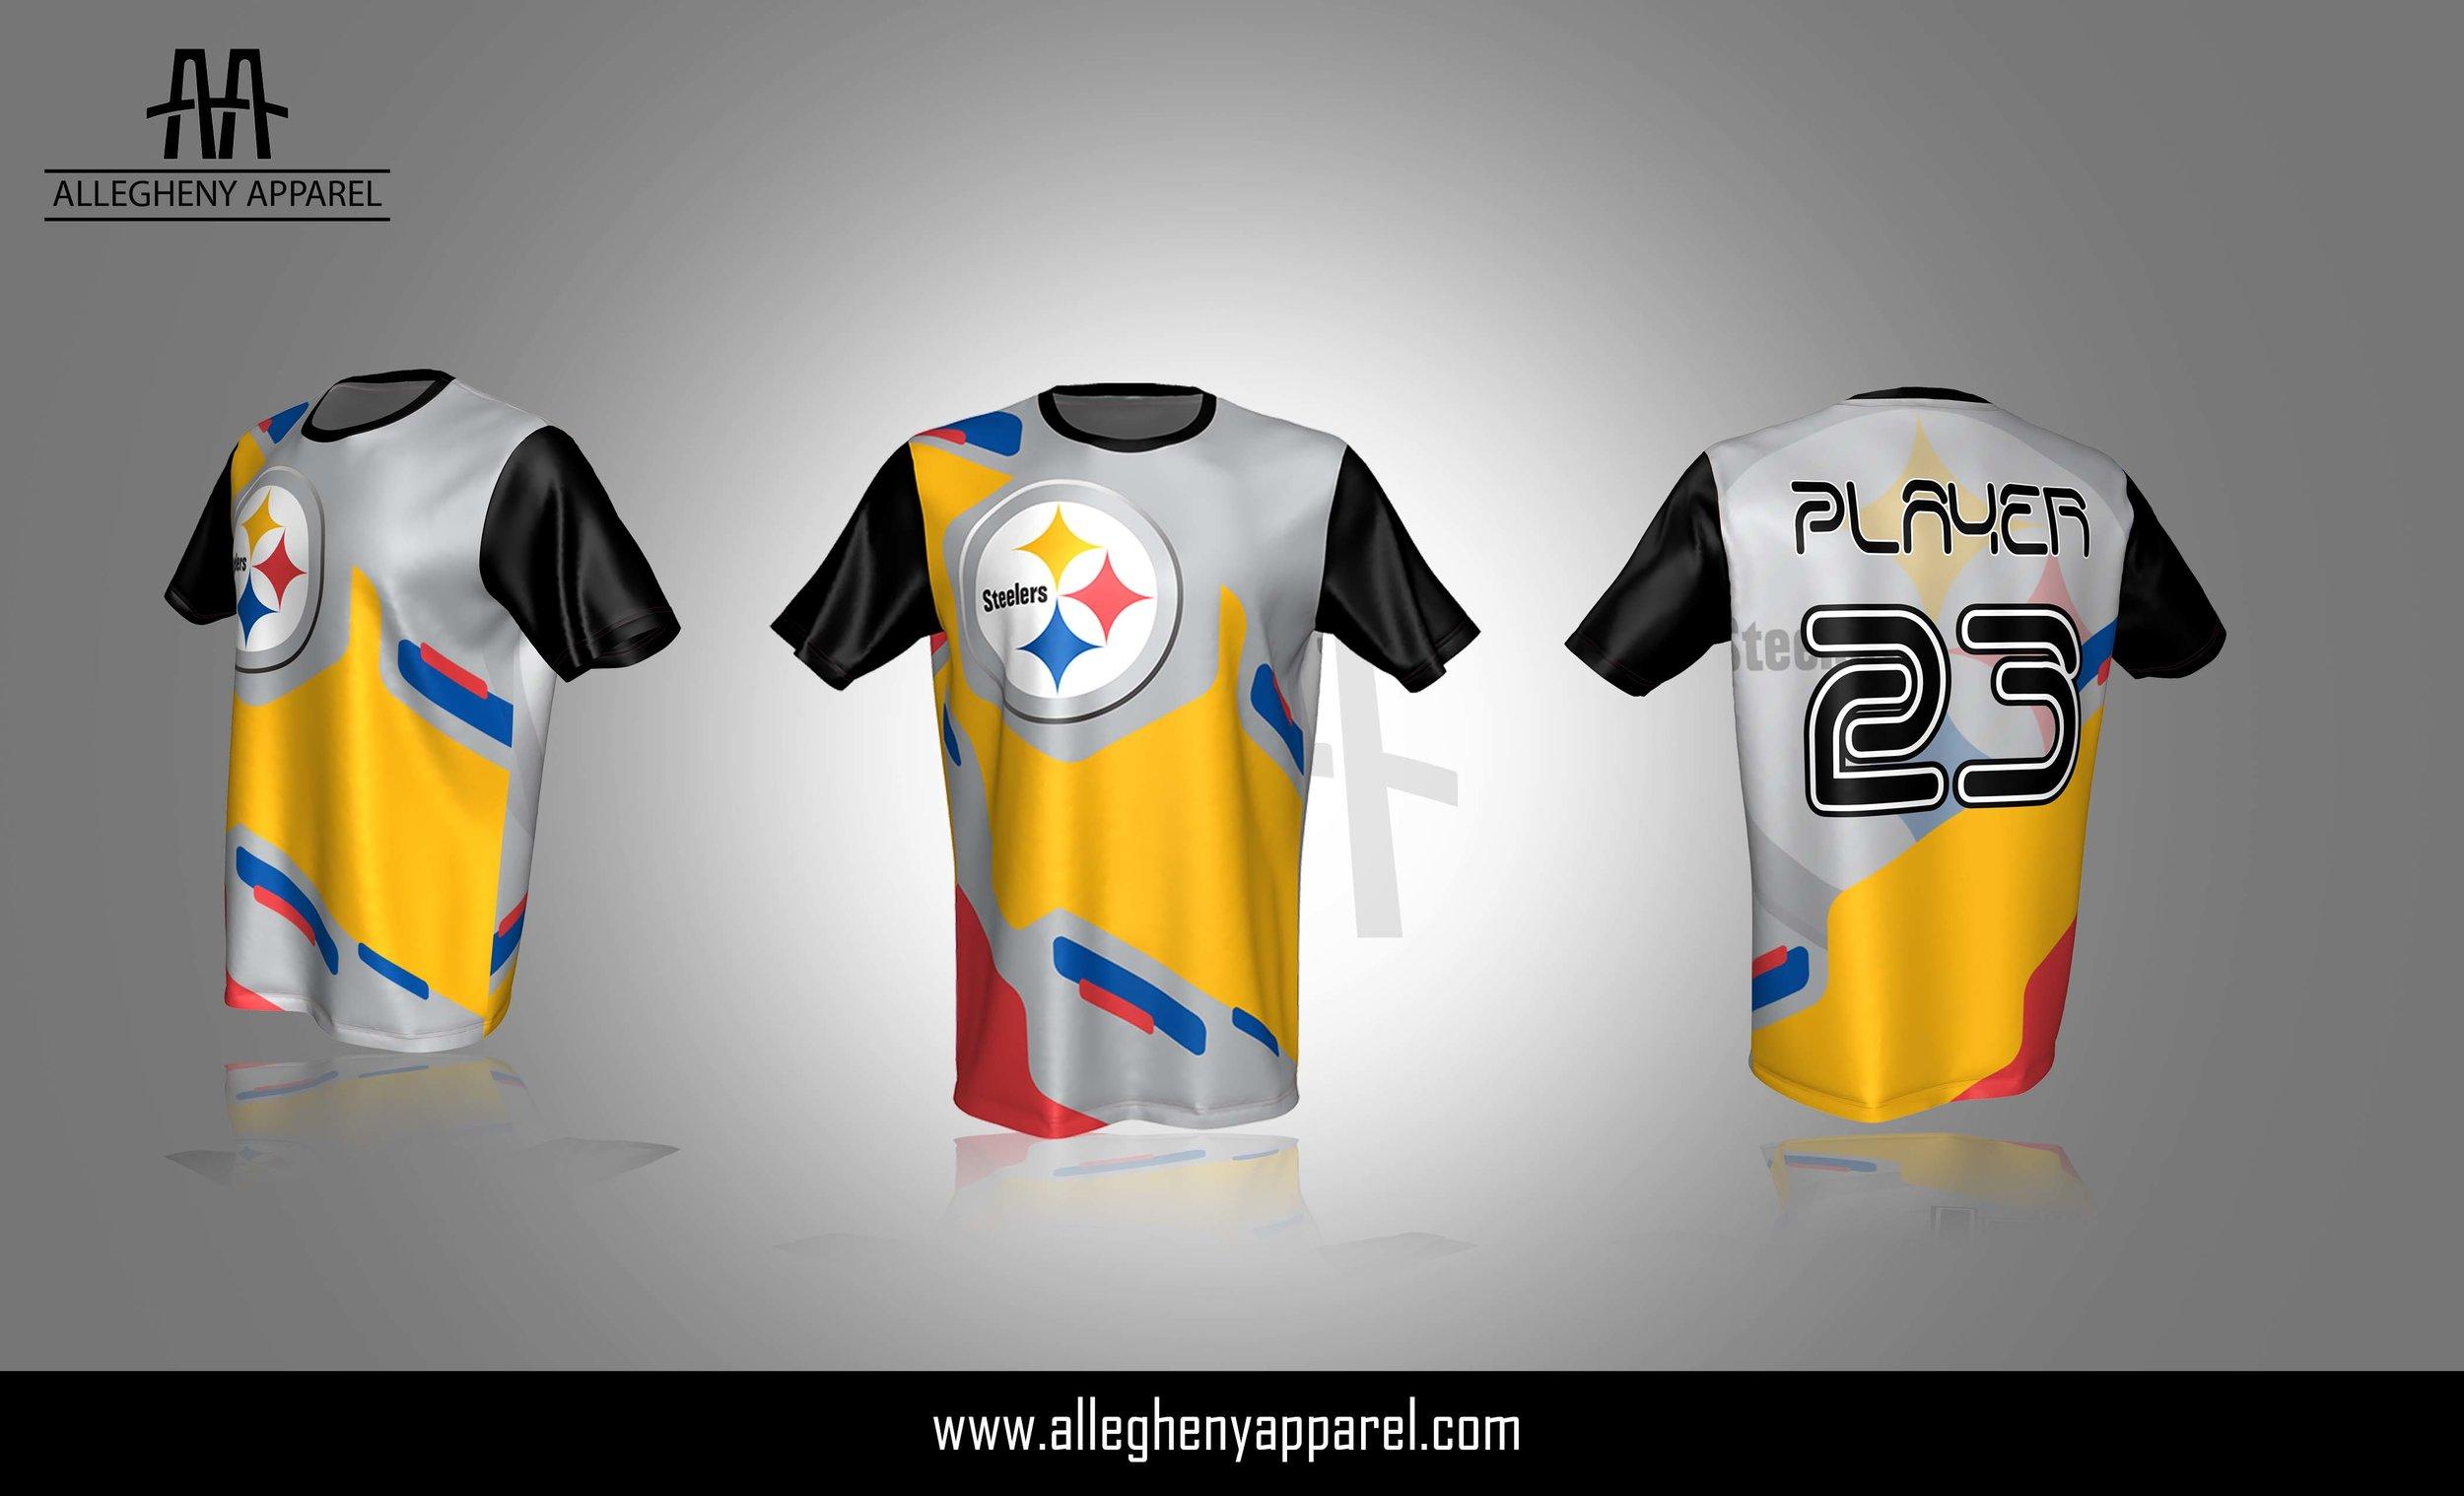 steelers shirt design.jpg